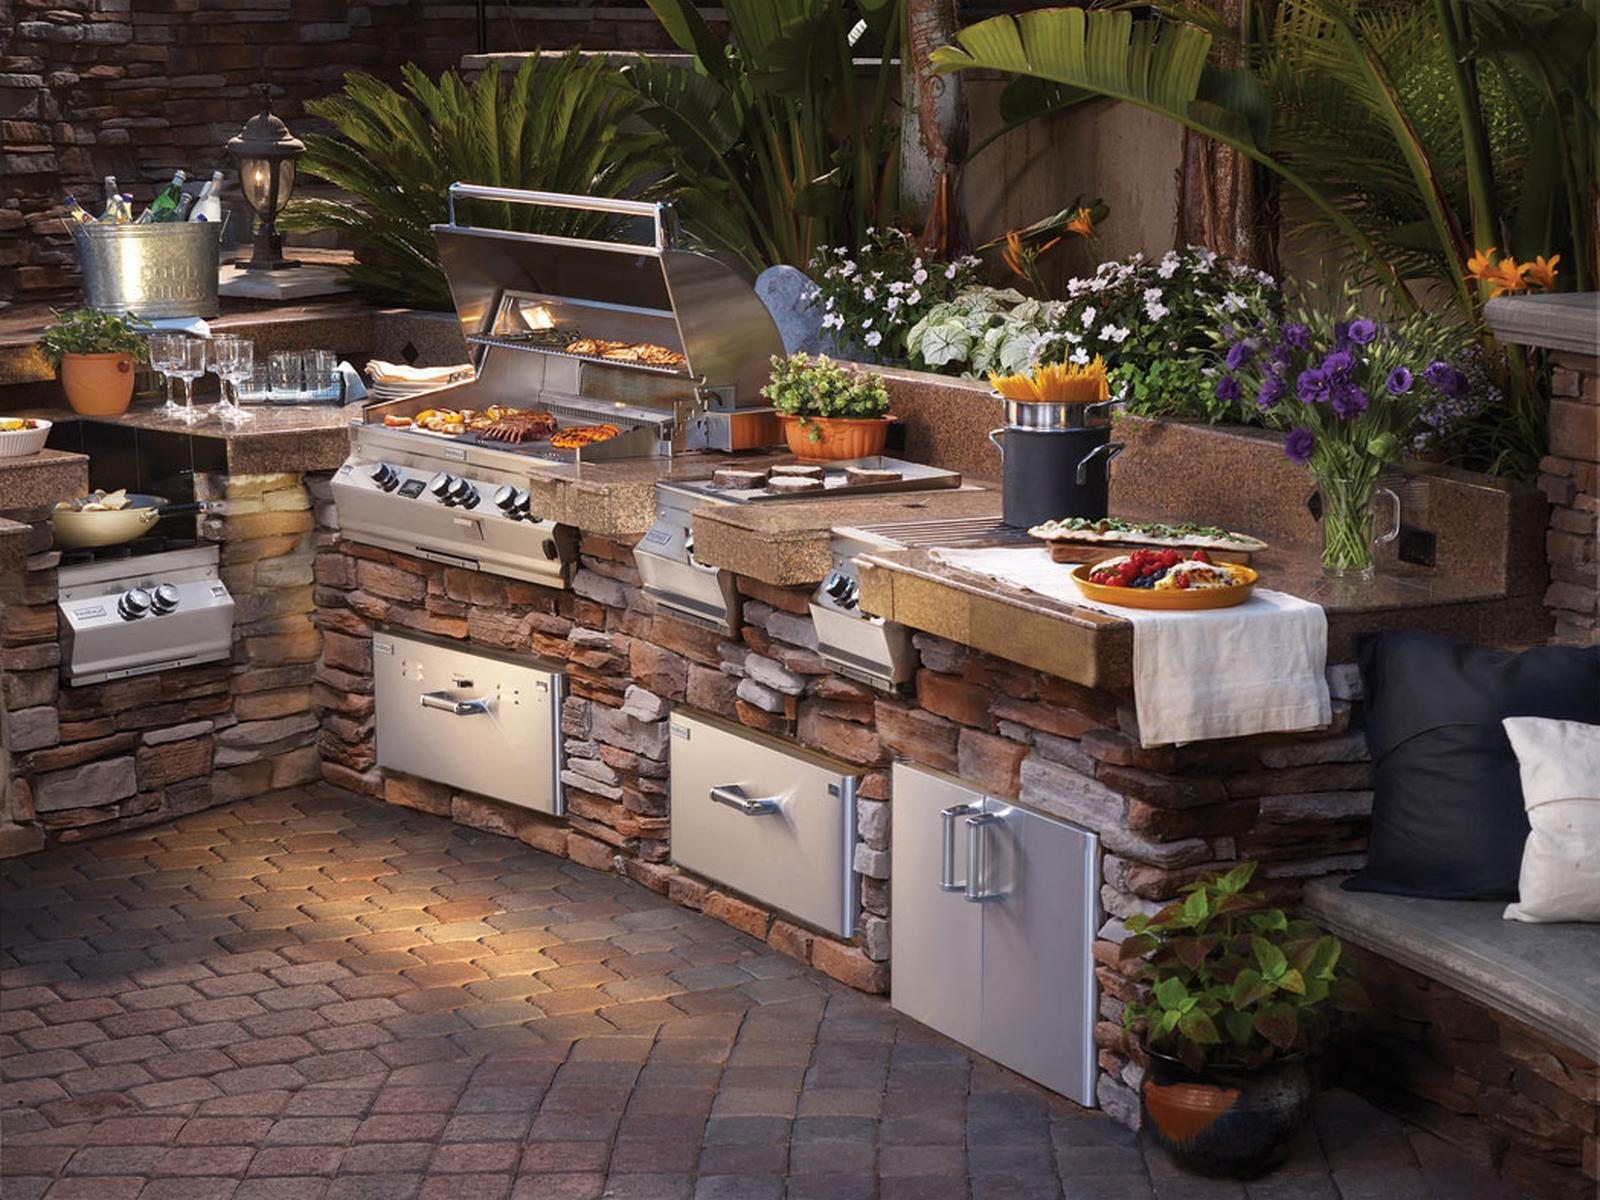 47 Amazing Outdoor Kitchen Designs and Ideas